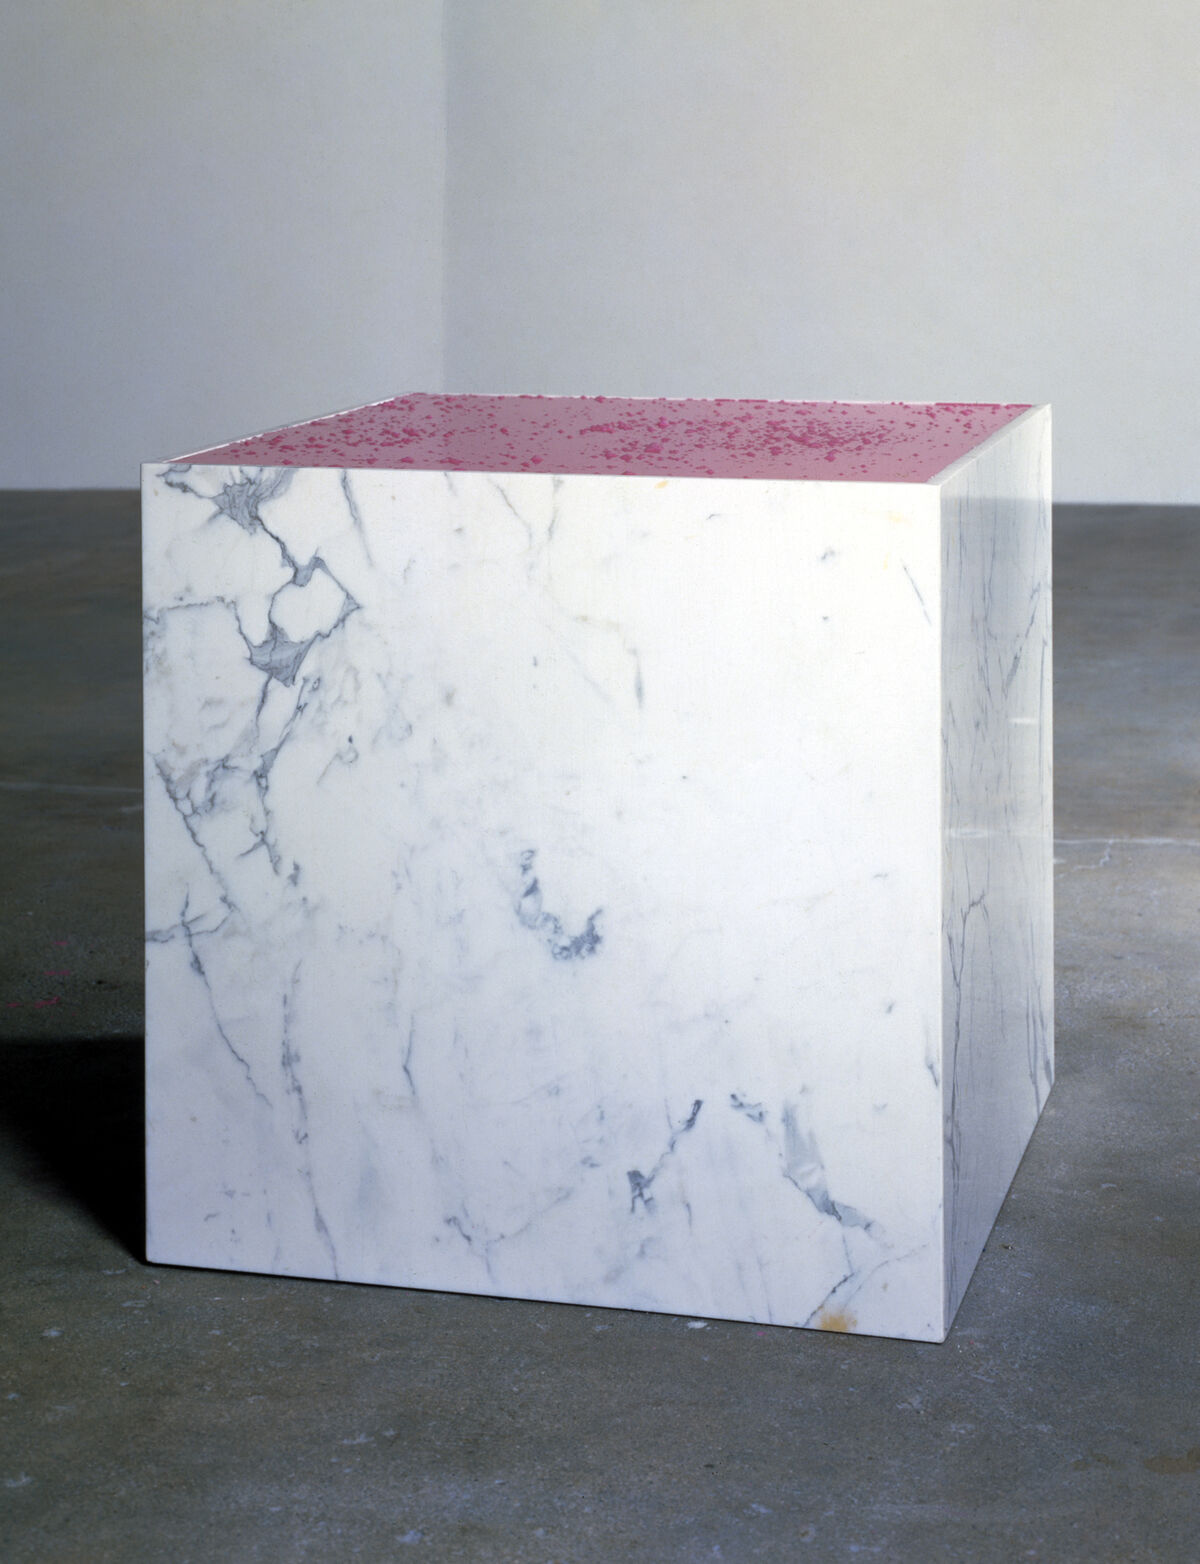 Charles Ray, Pepto-Bismol in a Marble Box, 1988. © Charles Ray. Courtesy of Matthew Marks Gallery.